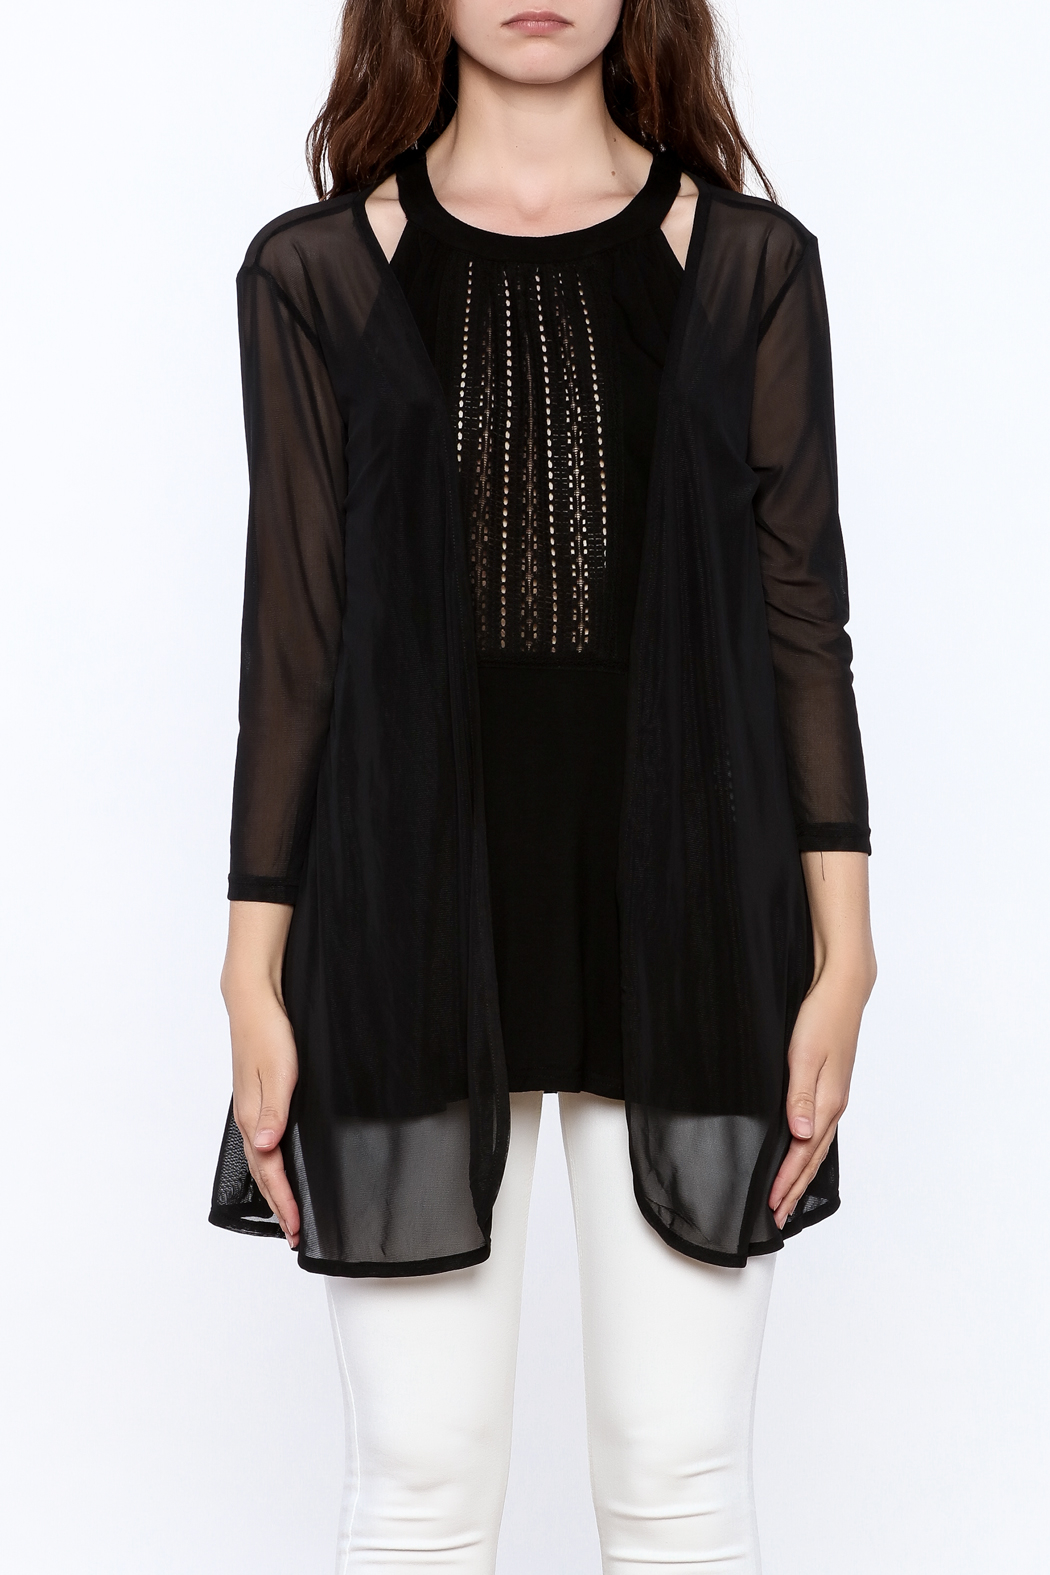 molli Black Mesh Cardigan - Side Cropped Image